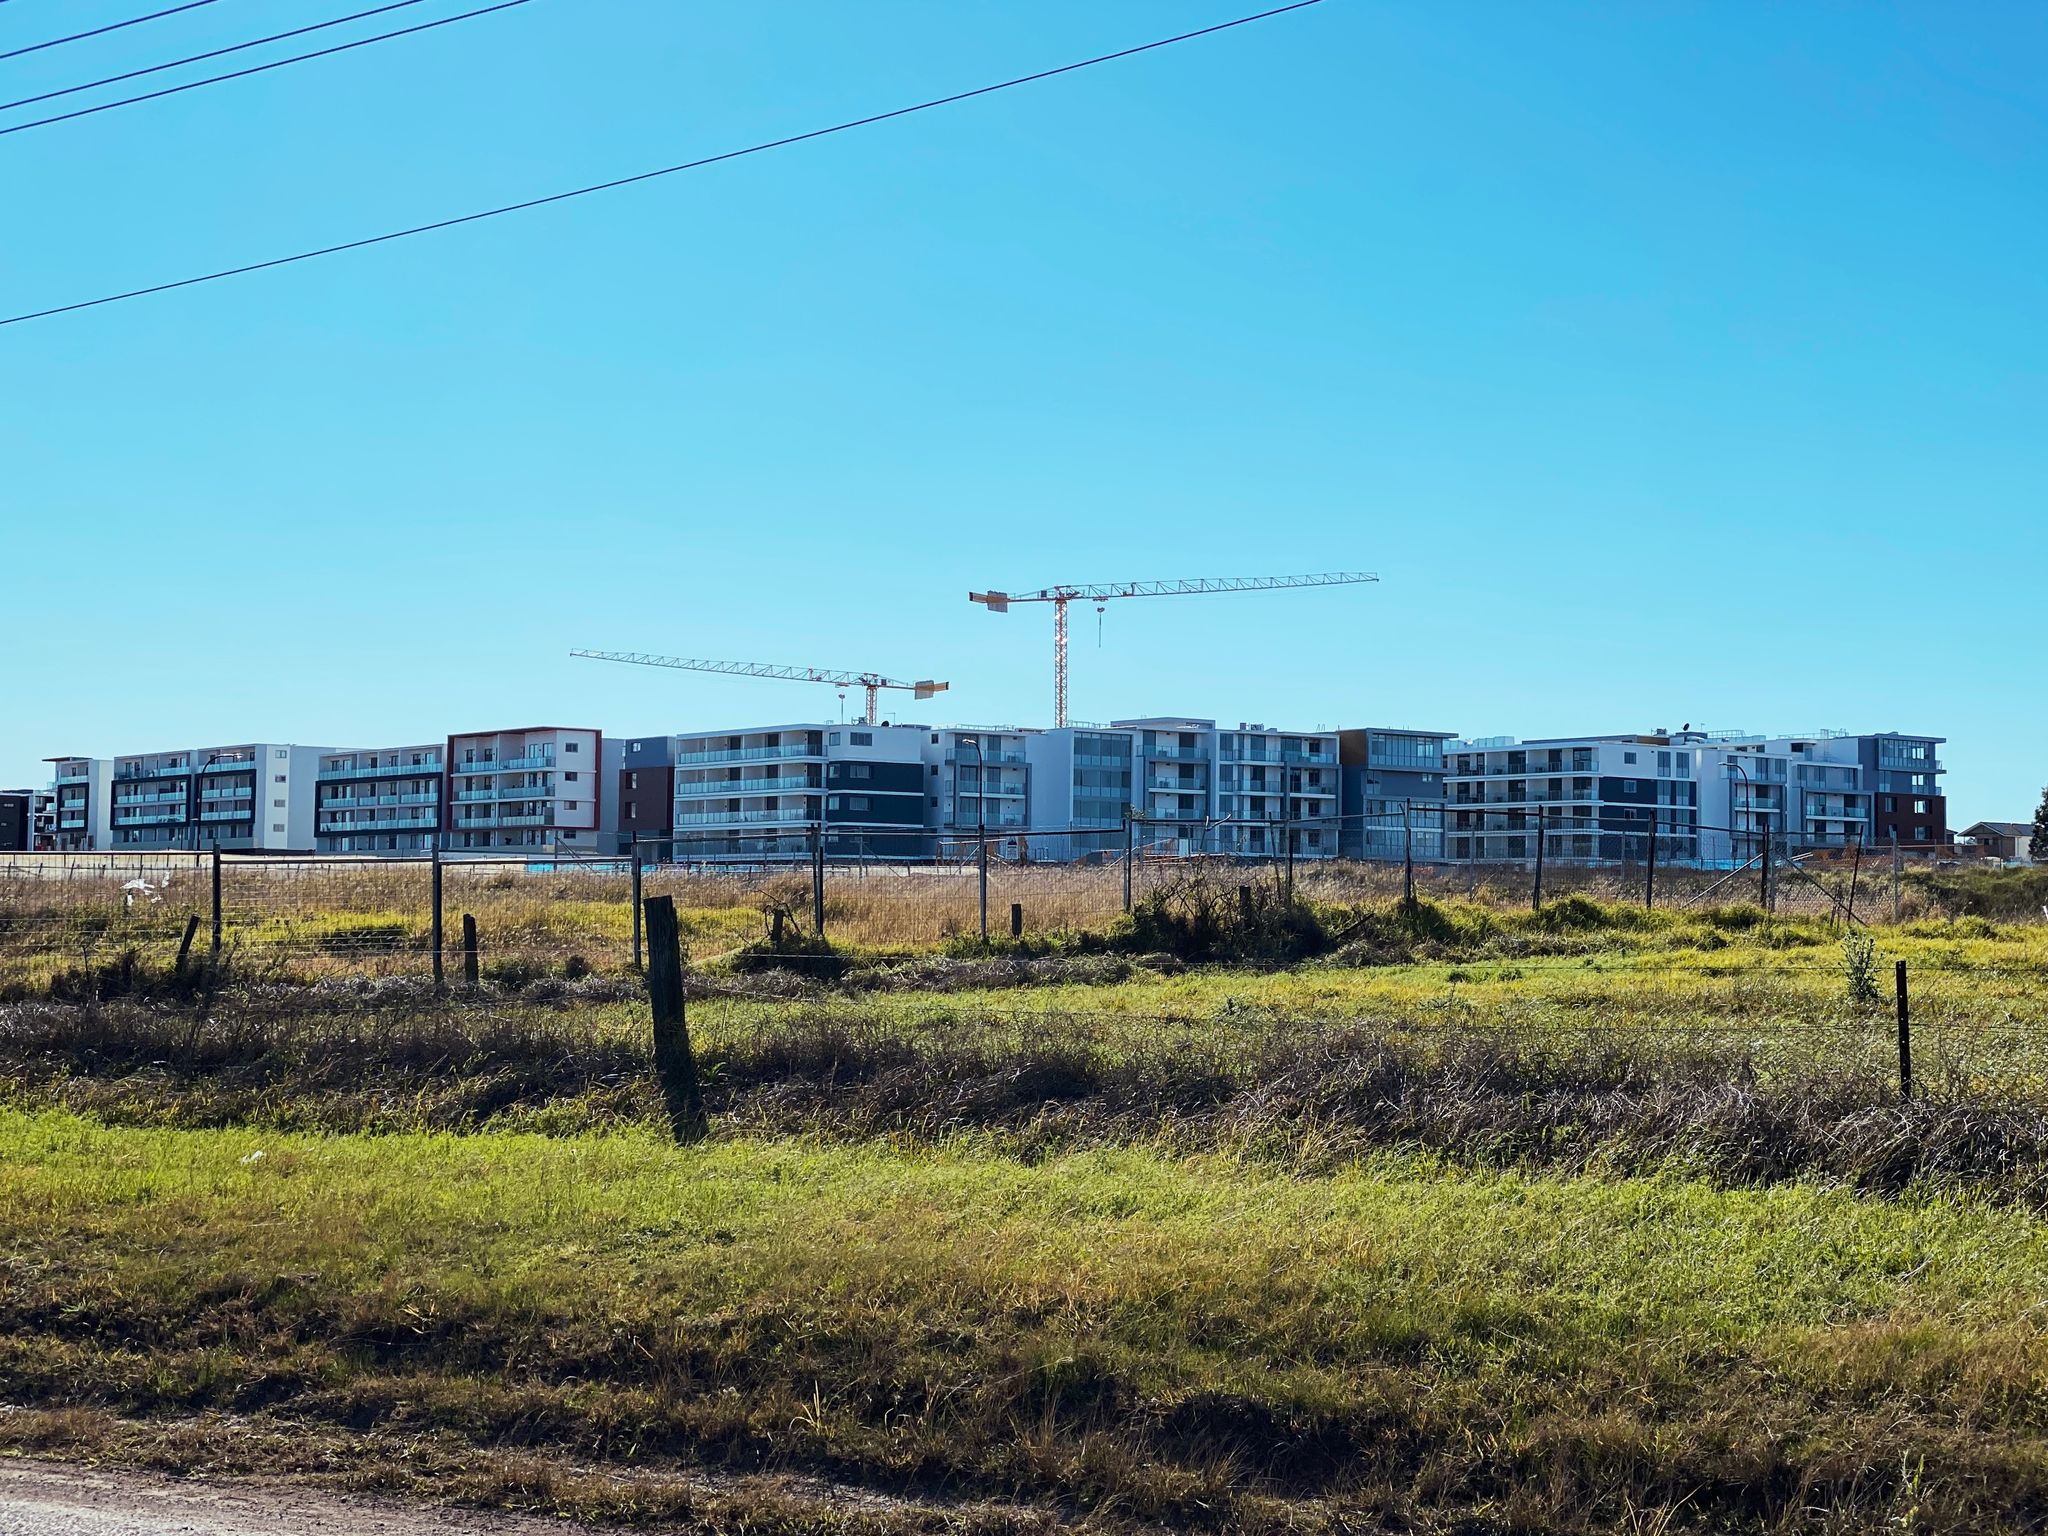 A photo of something like six or seven unit blocks of either four or five storeys in the distance, with huge cranes over the top of them where there's clearly more blocks being constructed behind the visible ones.